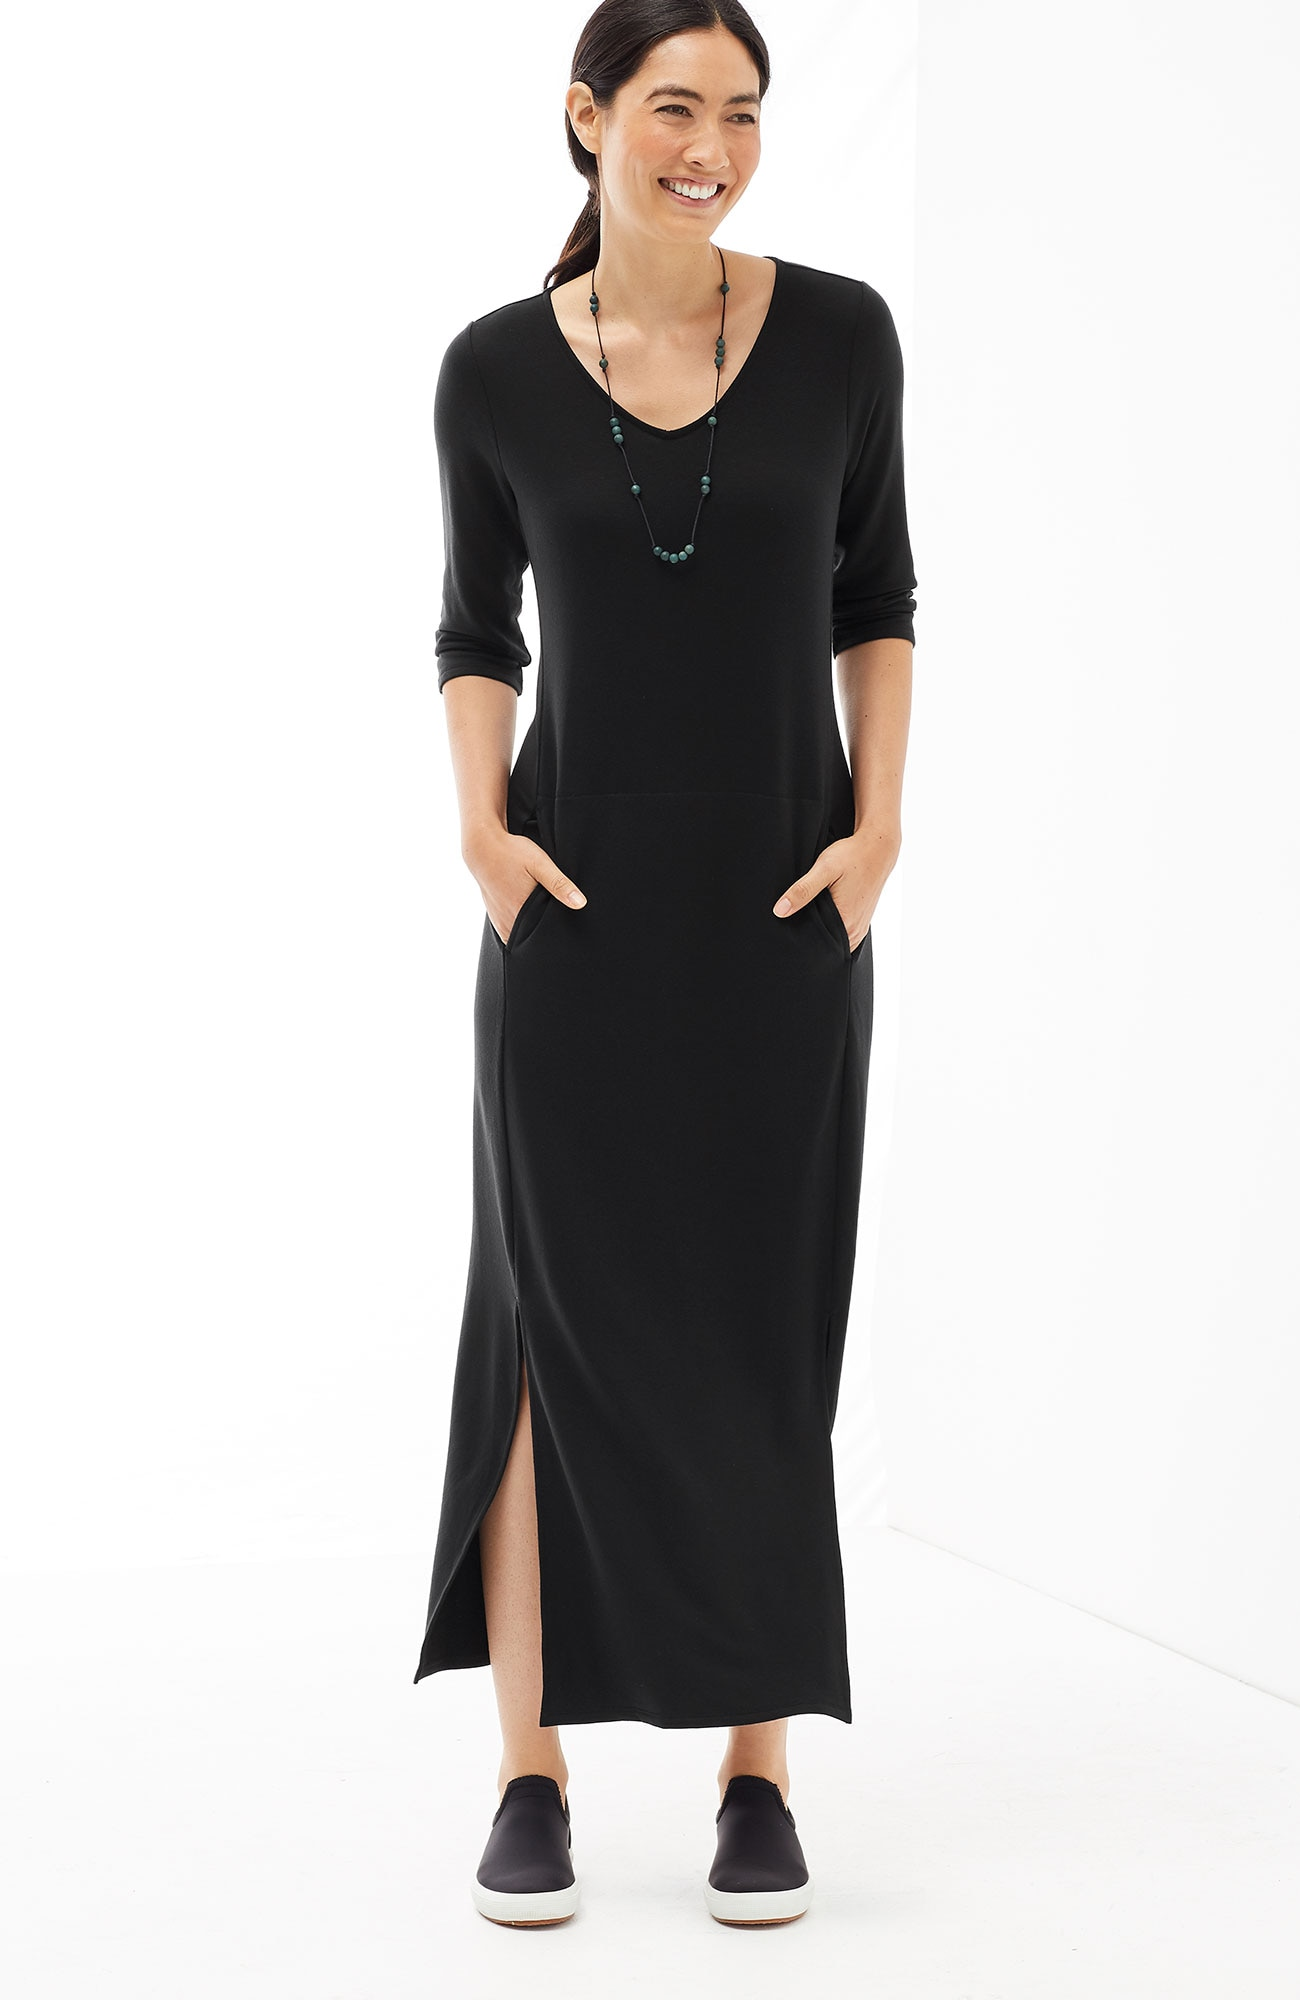 Pure Jill Luxe Tencel® V-neck maxi dress